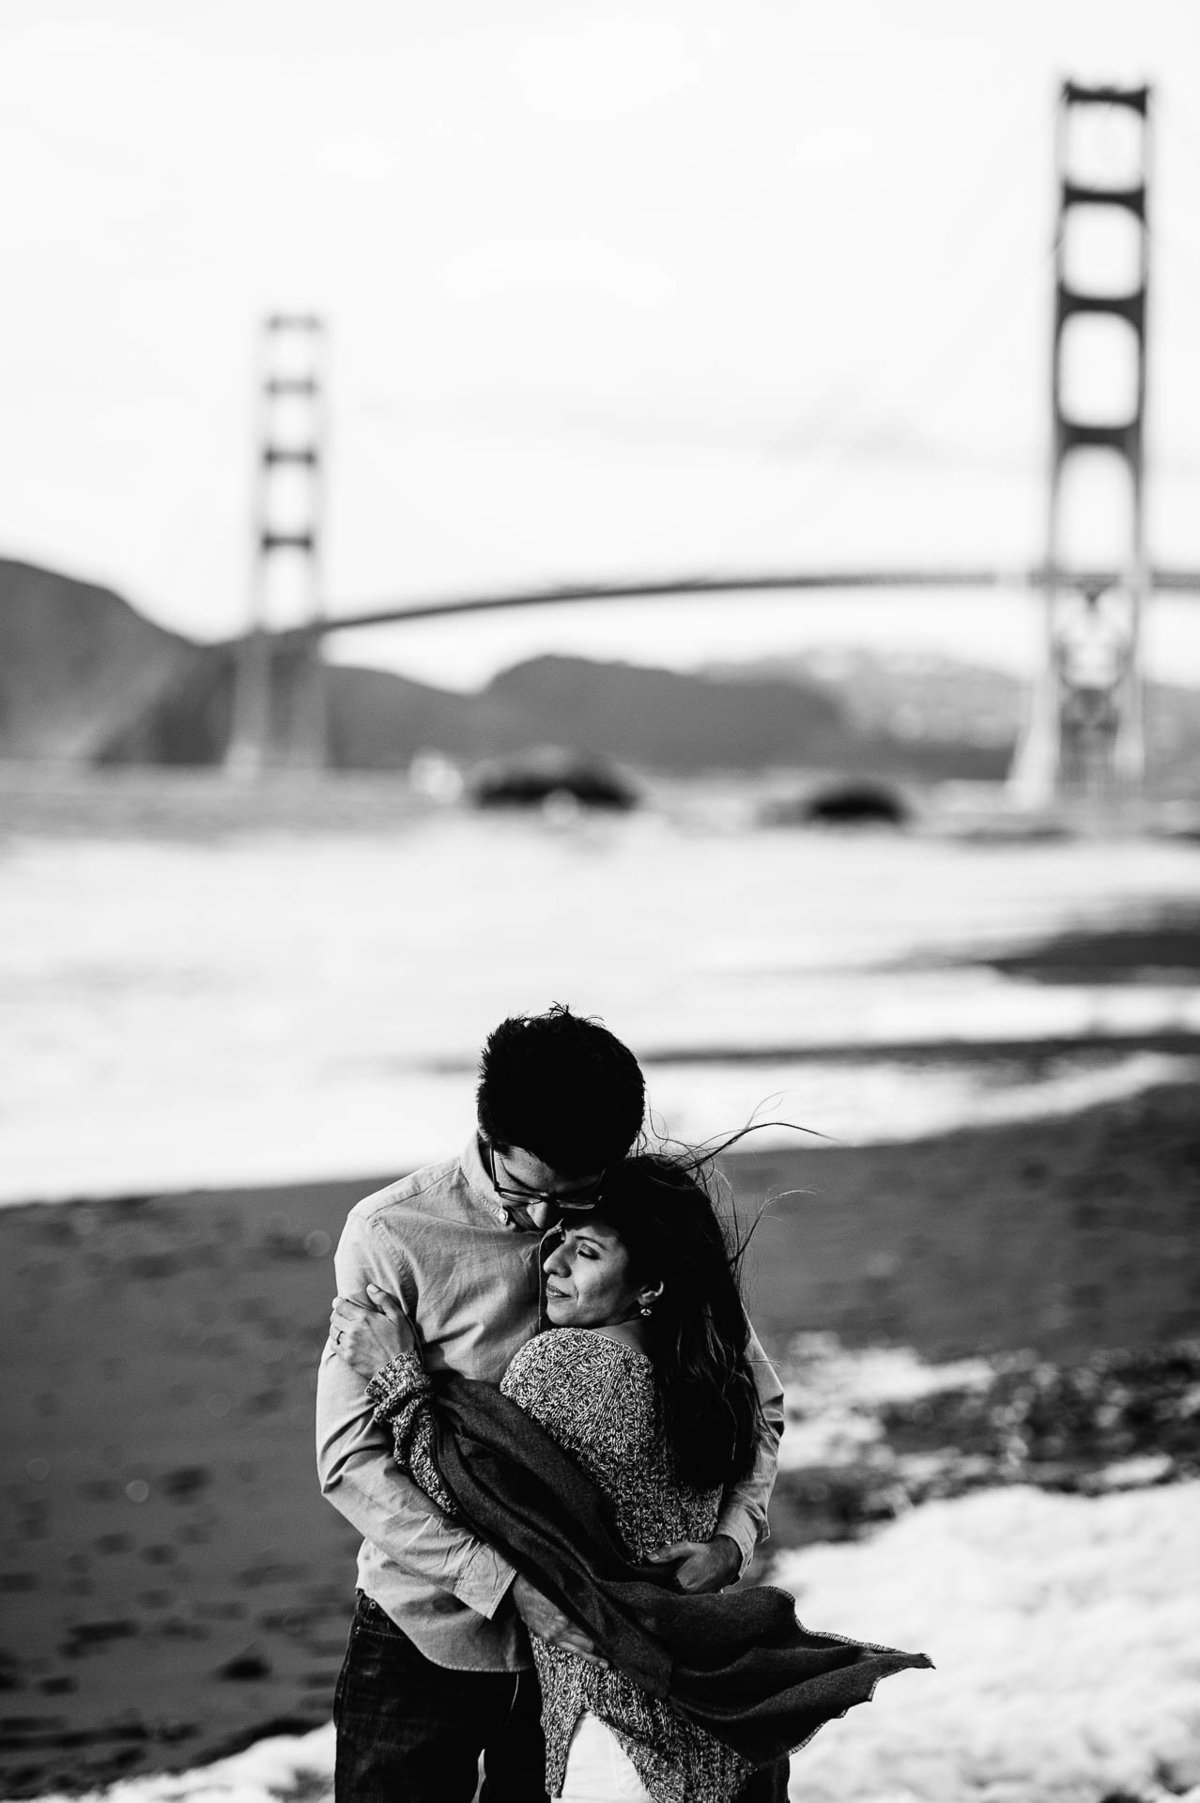 San-Francisco-wedding-photography-stephane-lemaire_26